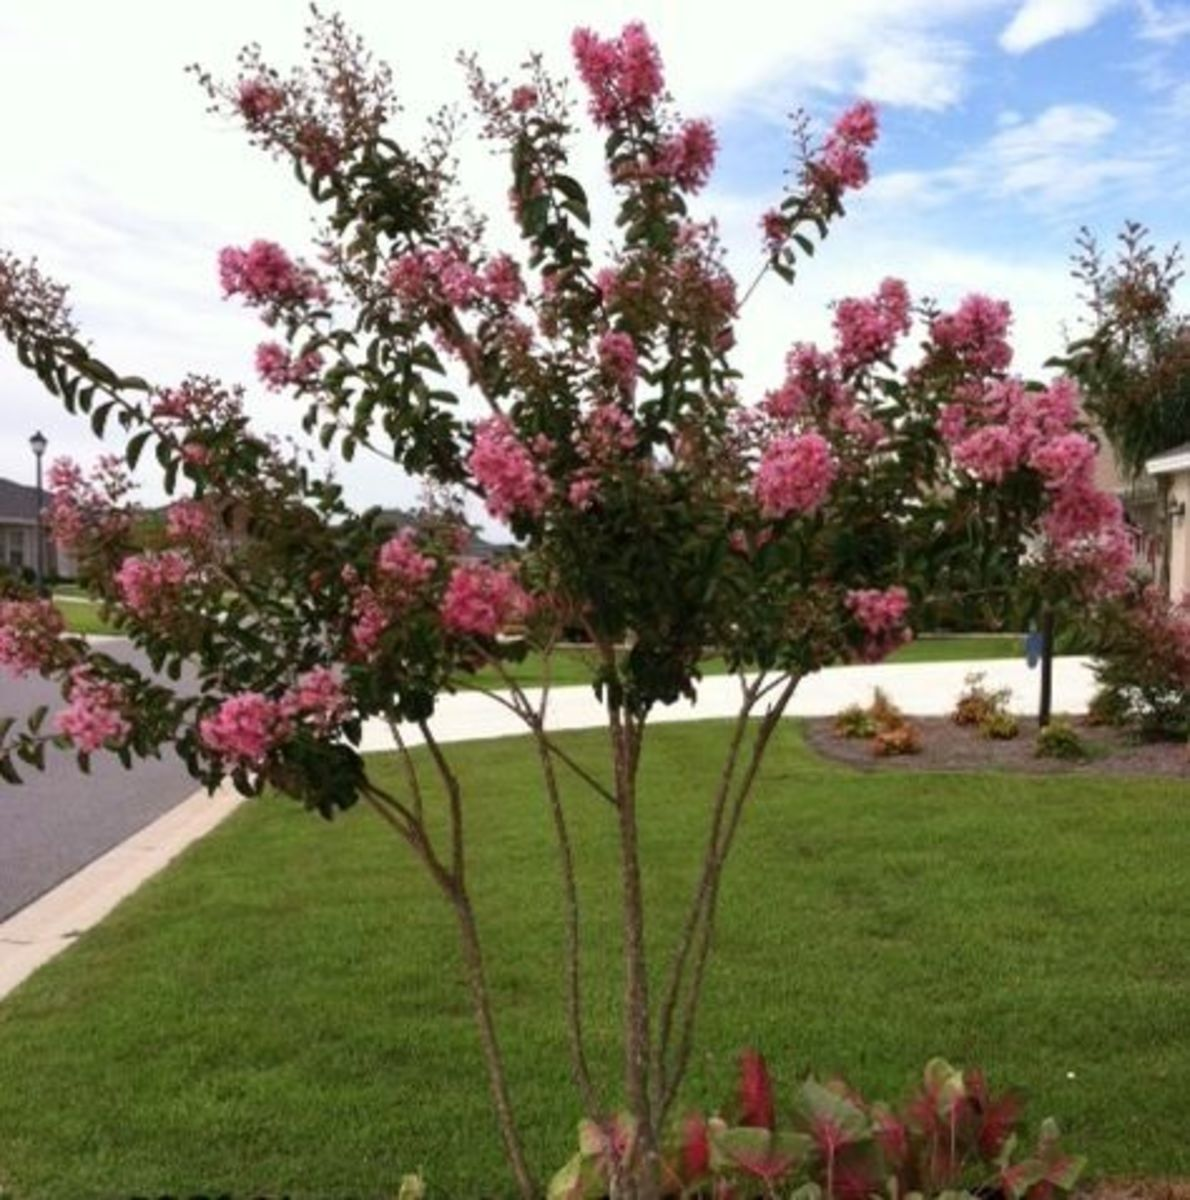 This myrtle is on its 2nd bloom cycle. You can see many new buds that haven't yet opened.